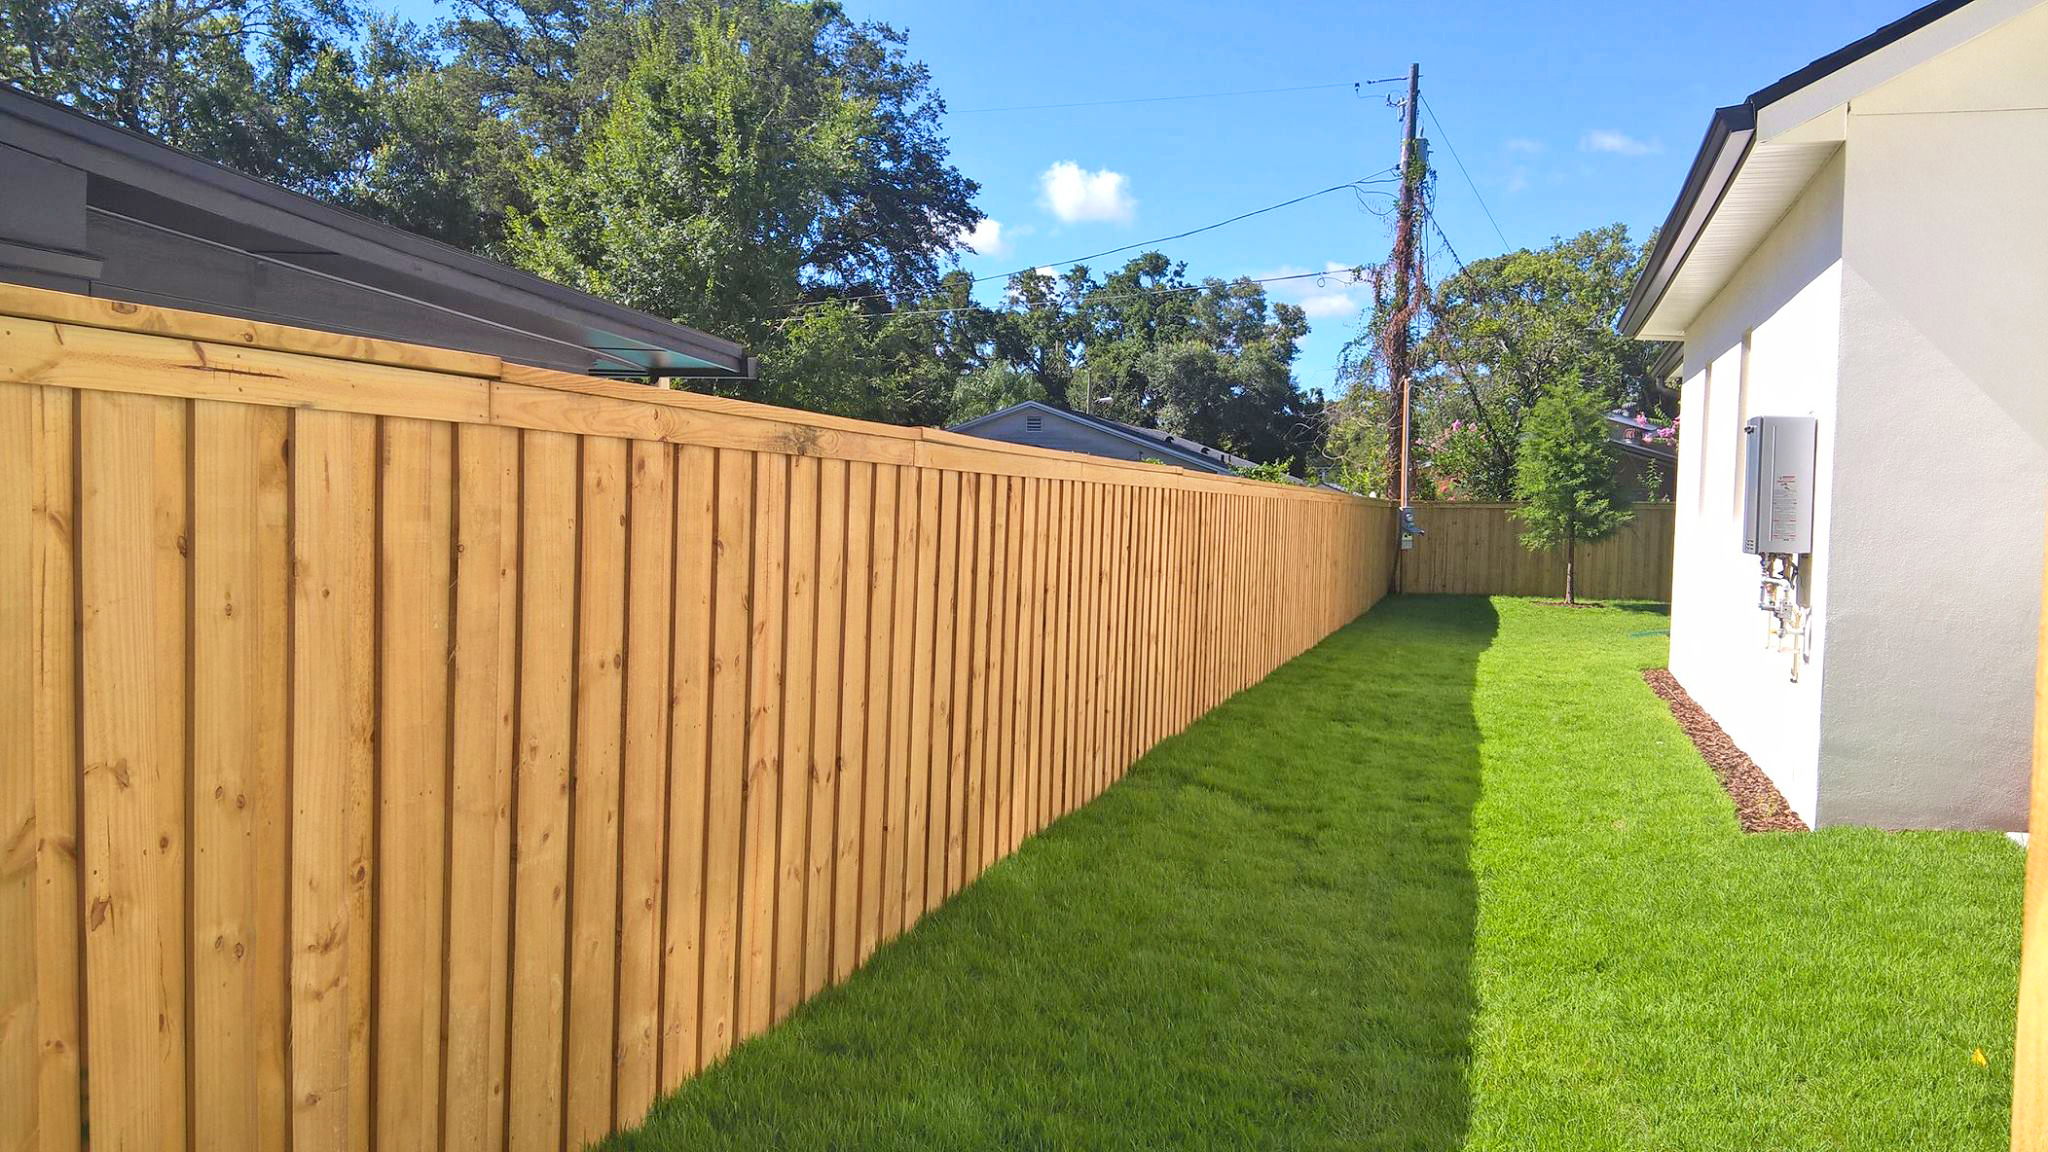 Wooden Fence Installation Orlando